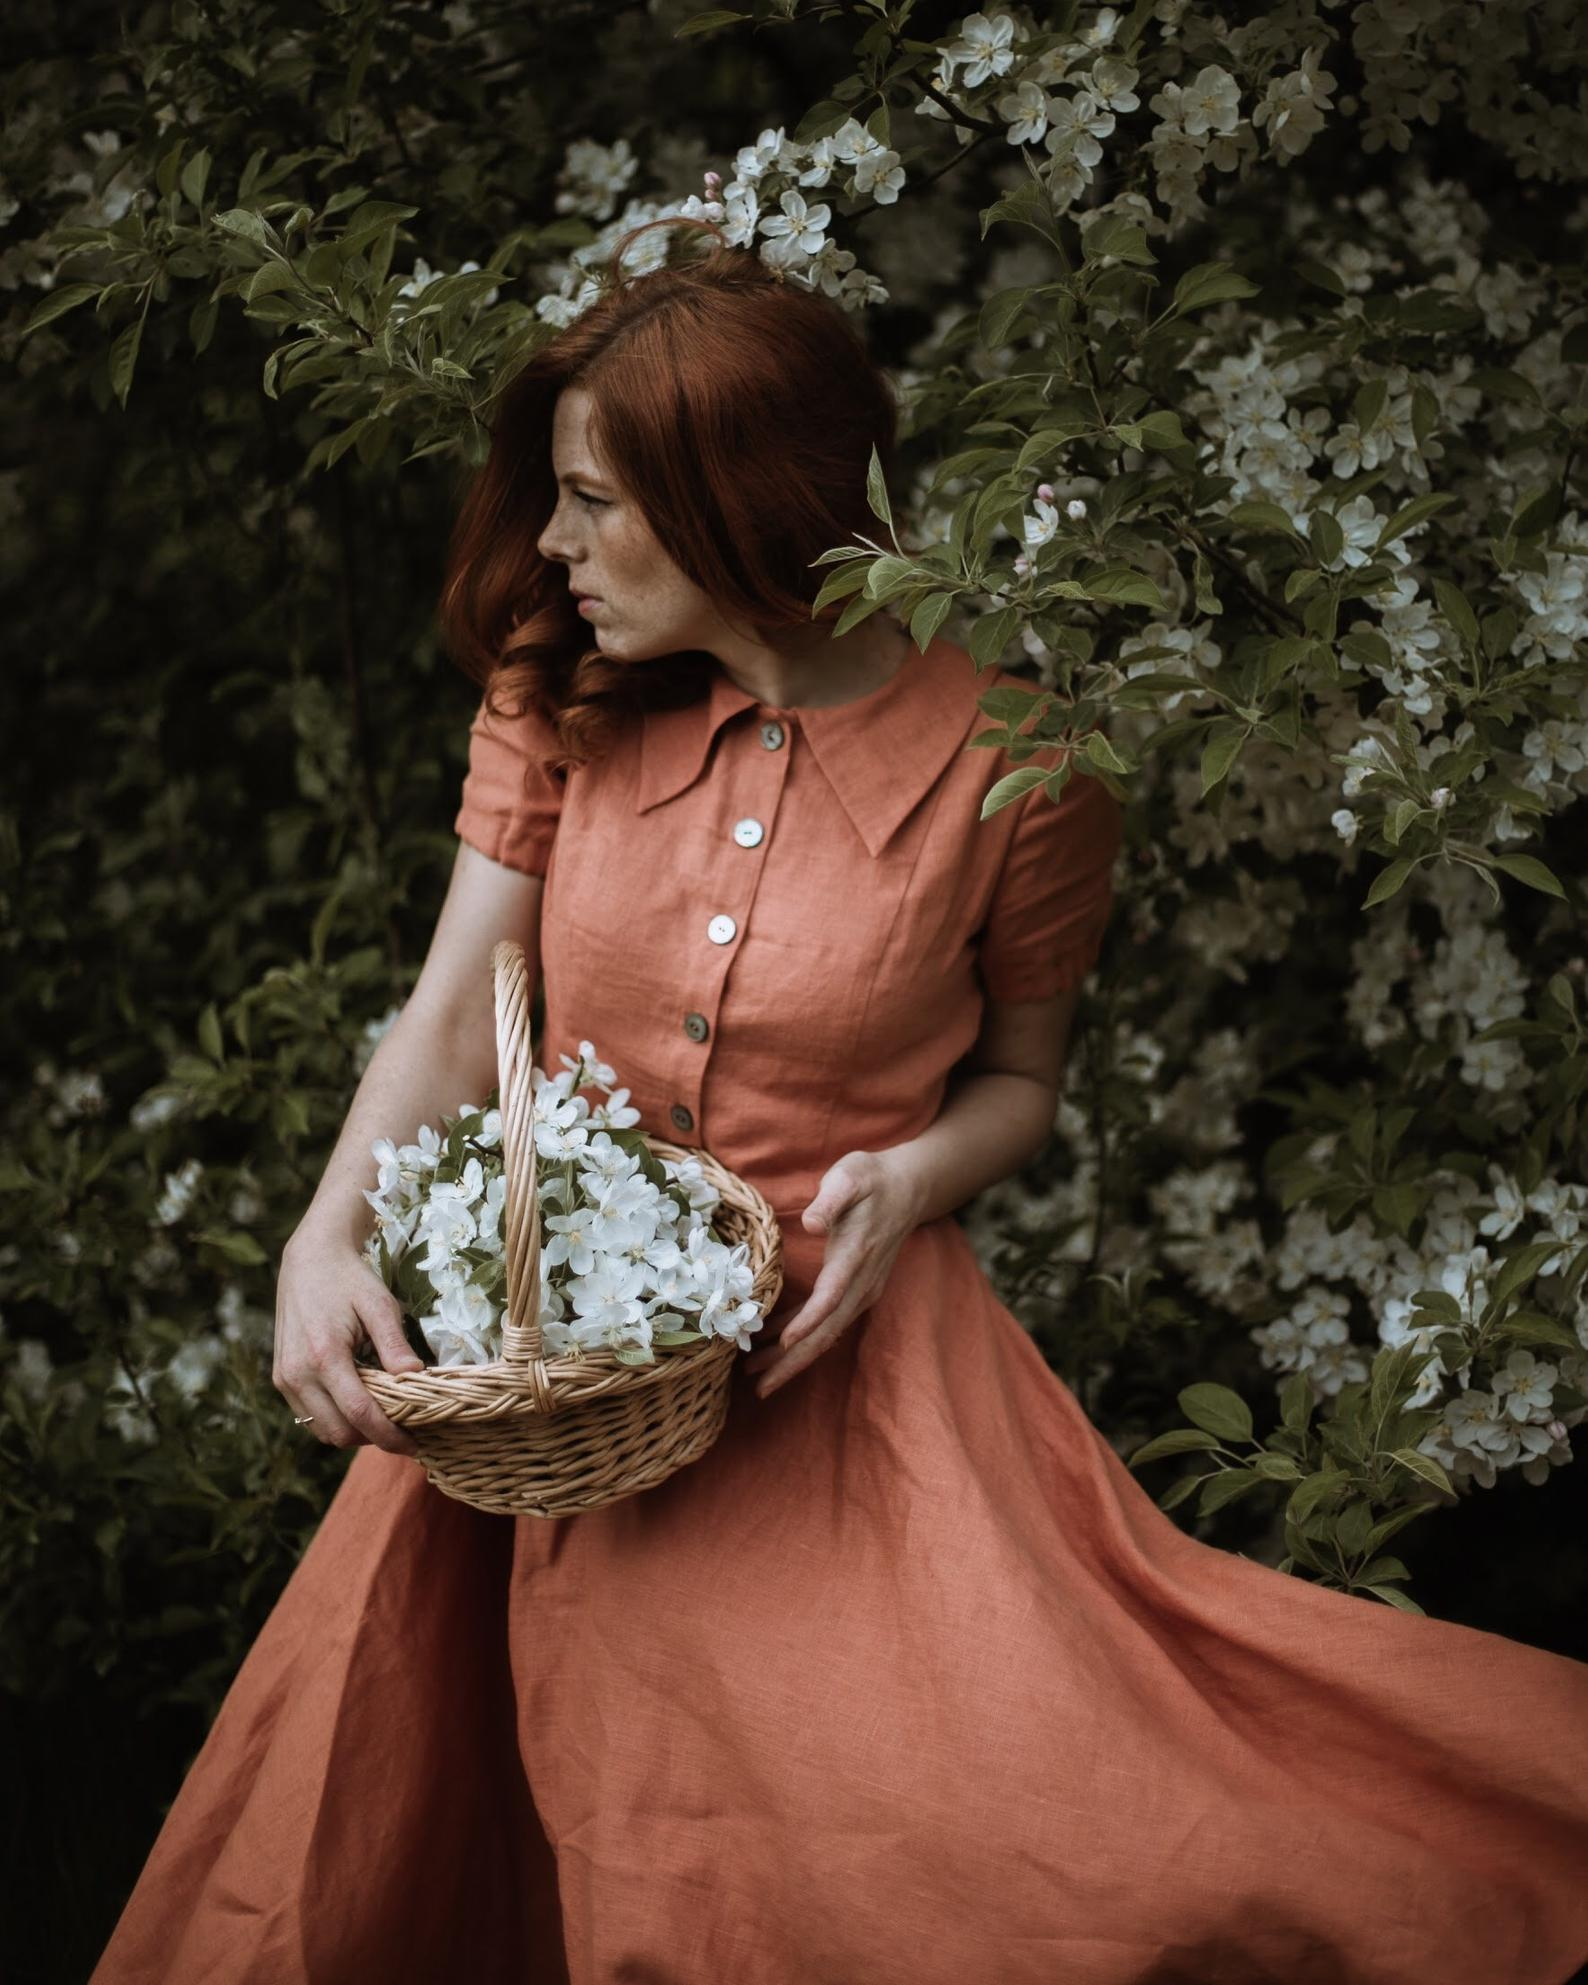 A woman standing against a floral bush wearing a rust colored linen dress with a pointed peter pan collar, buttons down the front, and short puffy sleeves, holding a basket of flowers a perfect cottagecore dress